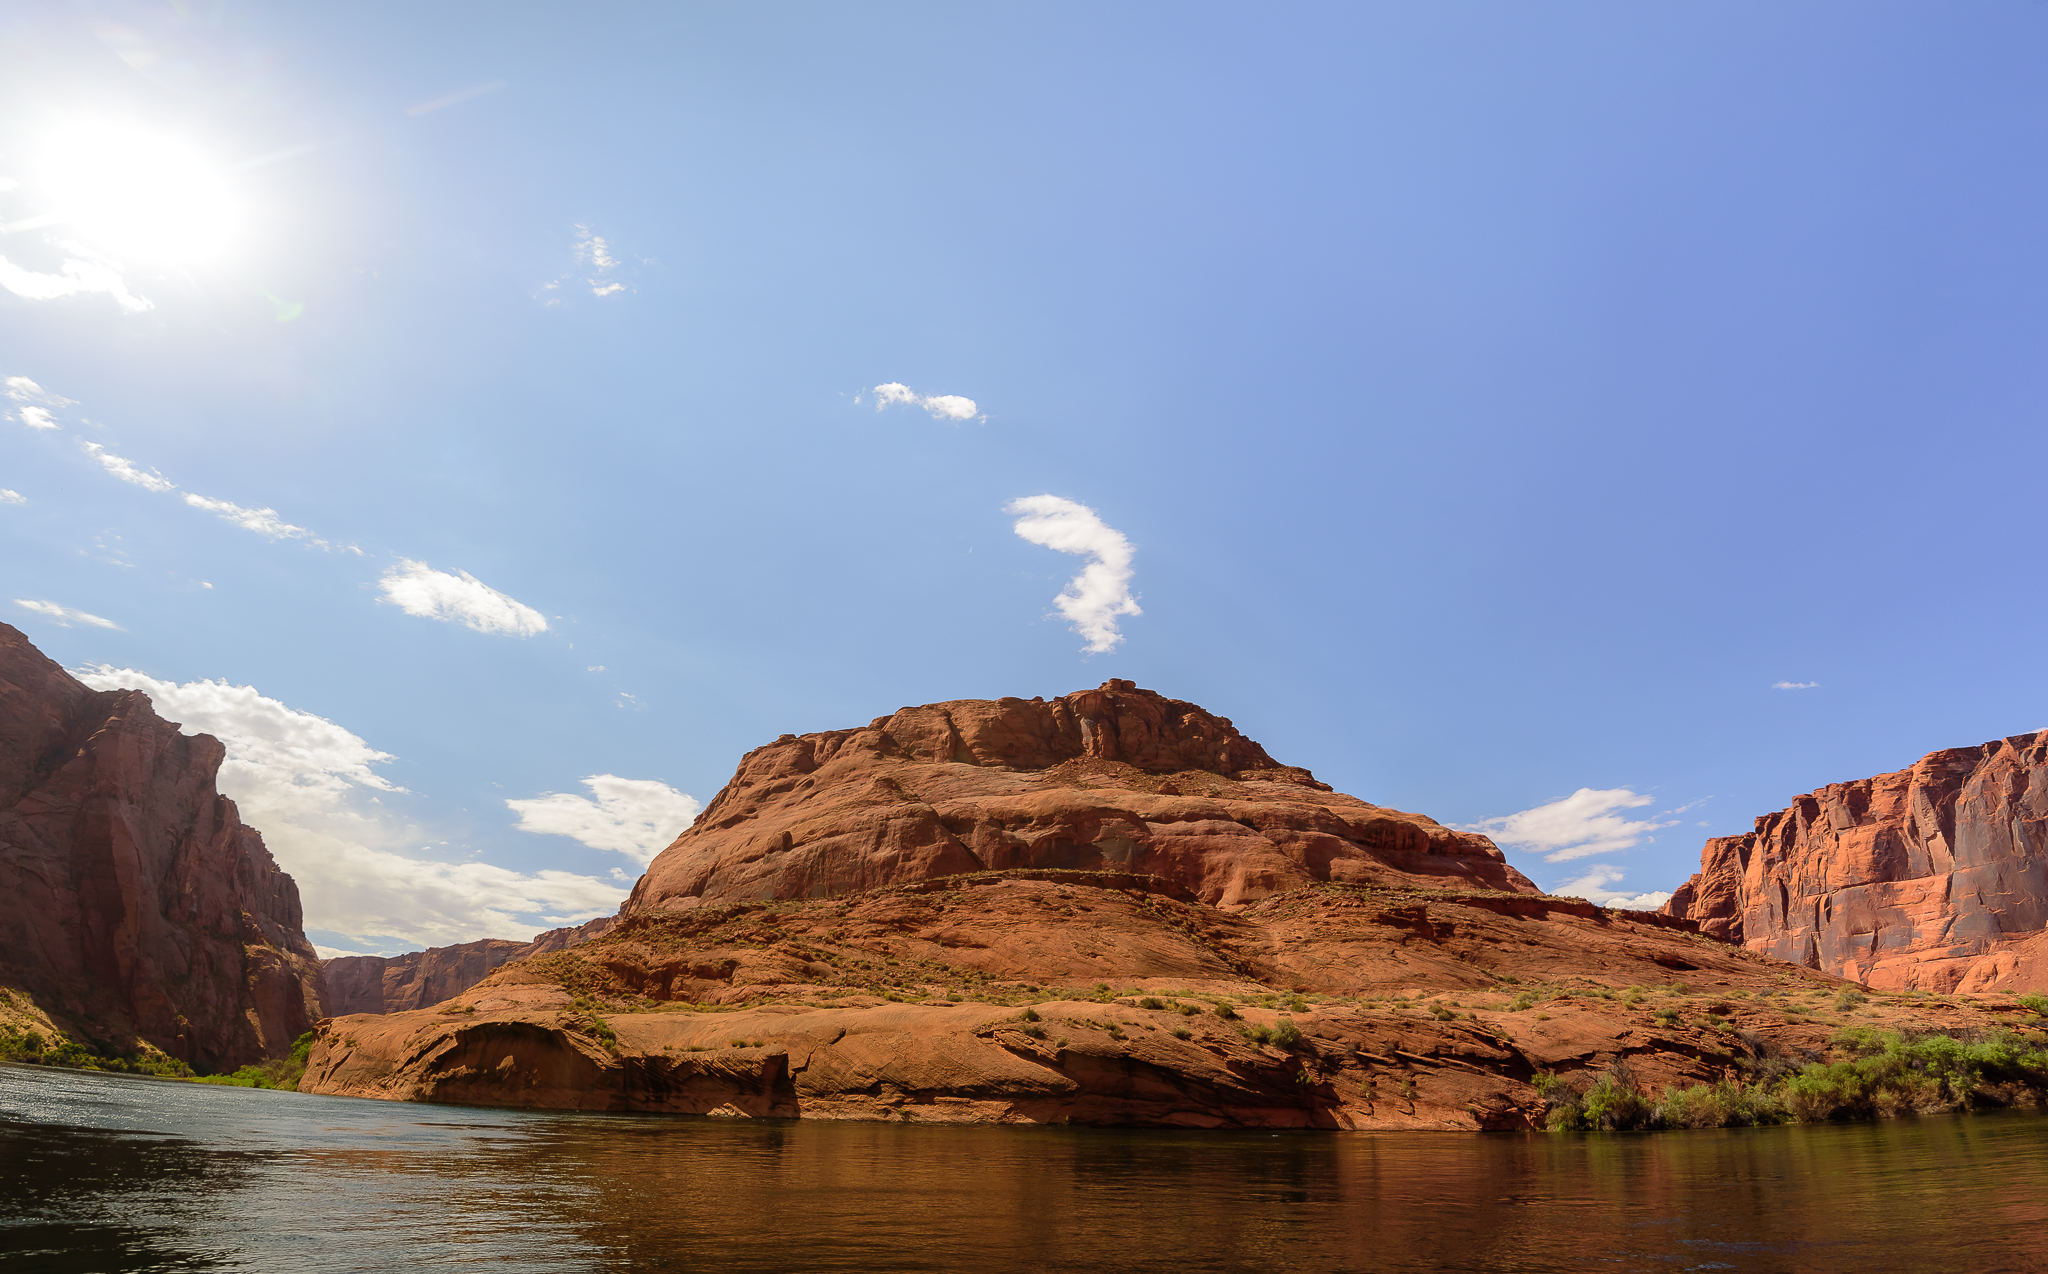 Different from water level. The view of Horseshoe Bend from the actual bend. Page, AZ.